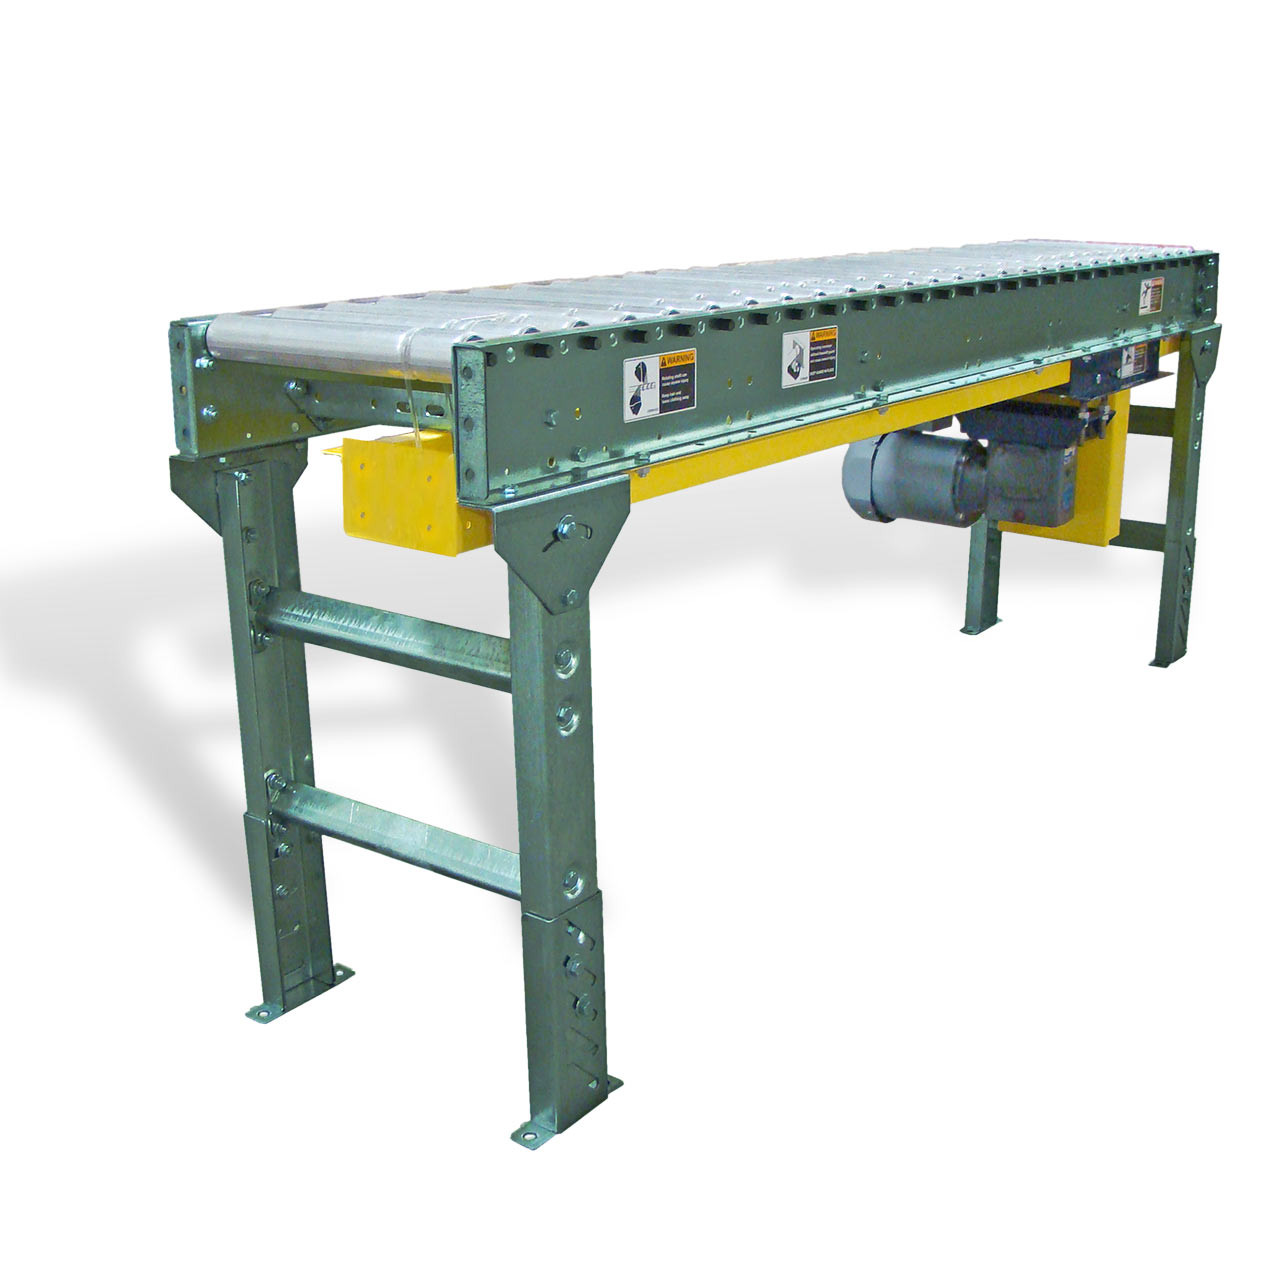 The lineshaft conveyor drive units are what makes it all work together